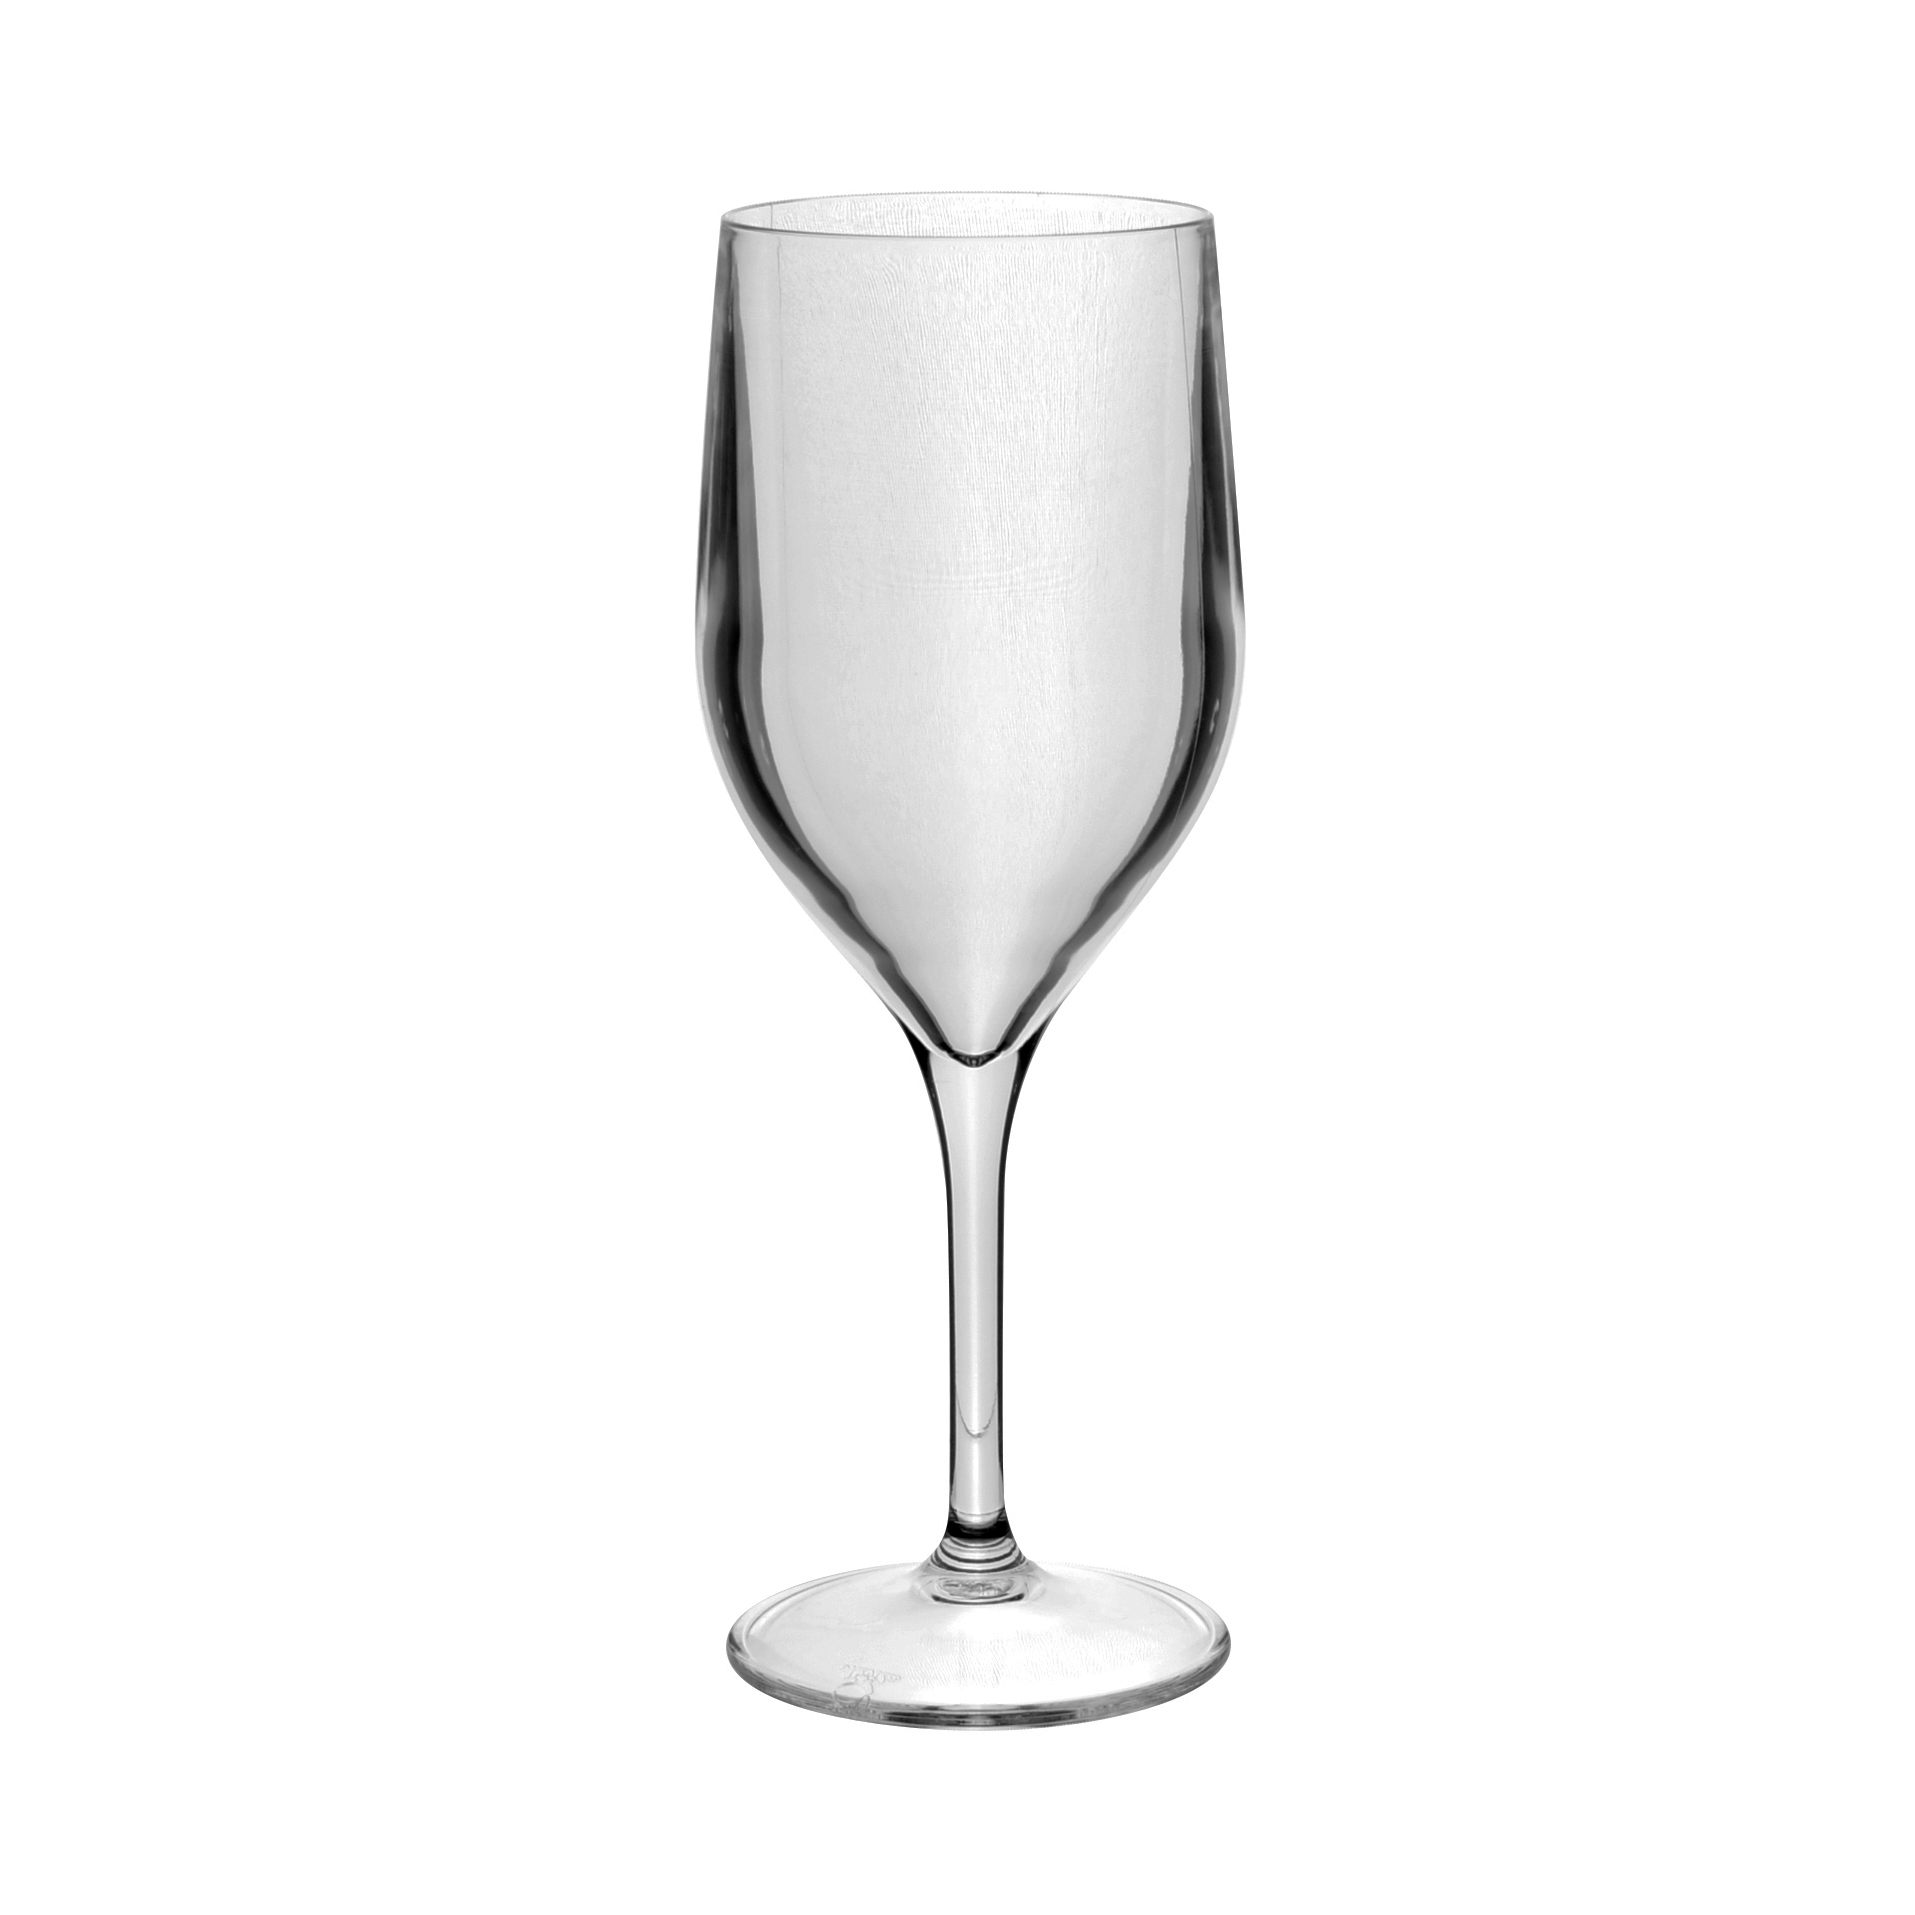 Polycarbonate wine glasses uk